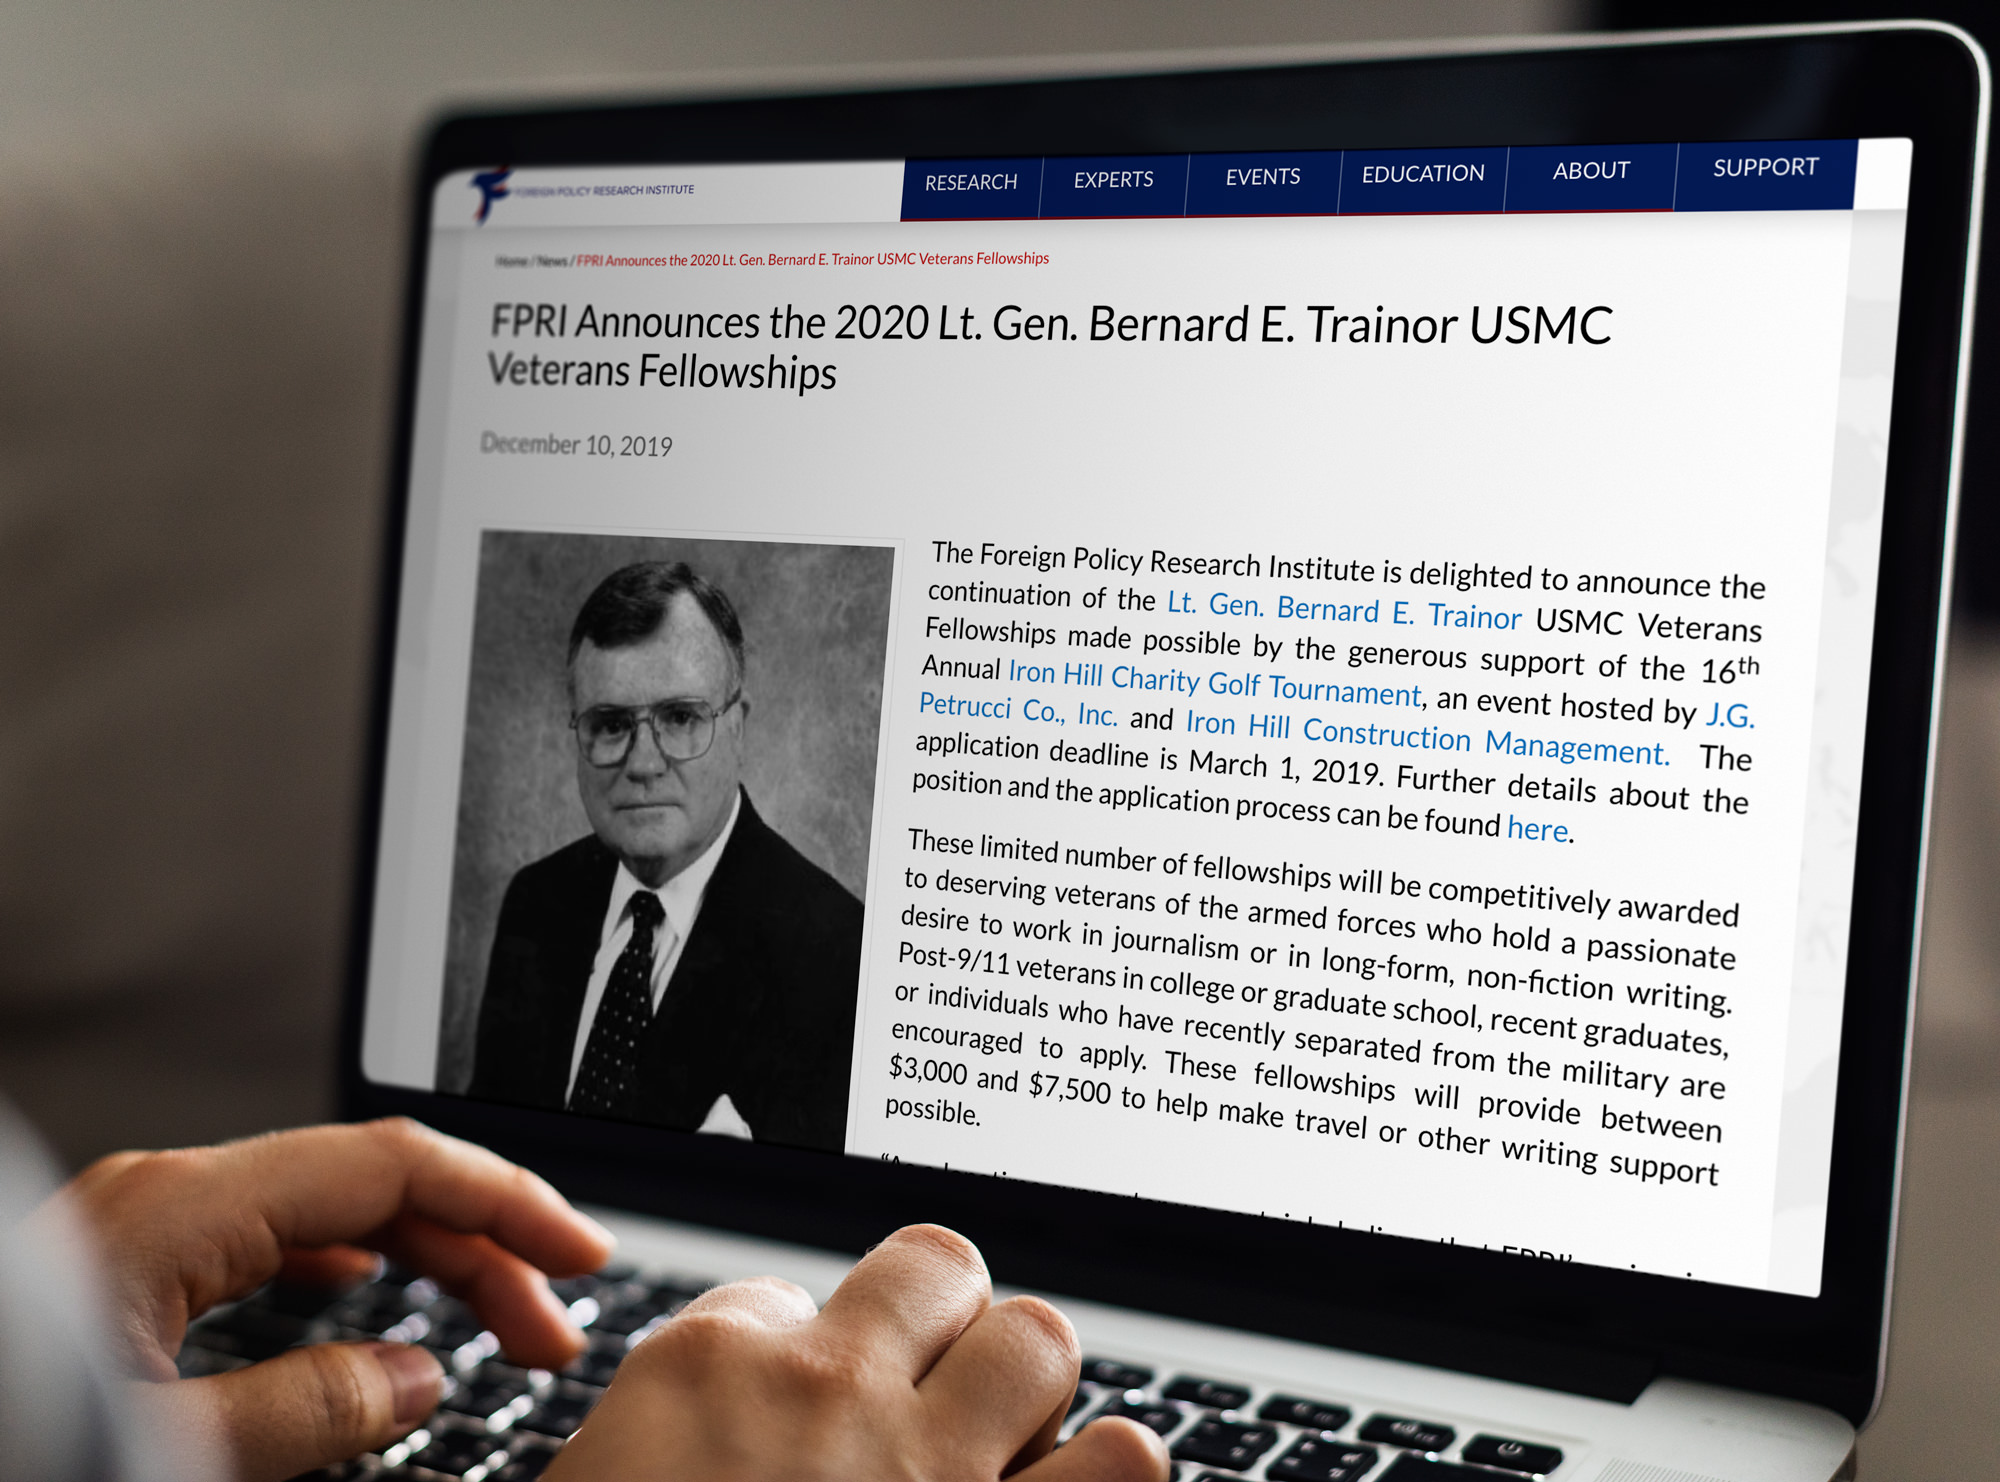 FPRI Announces the 2020 Lt. Gen. Bernard E. Trainor USMC Veterans Fellowships